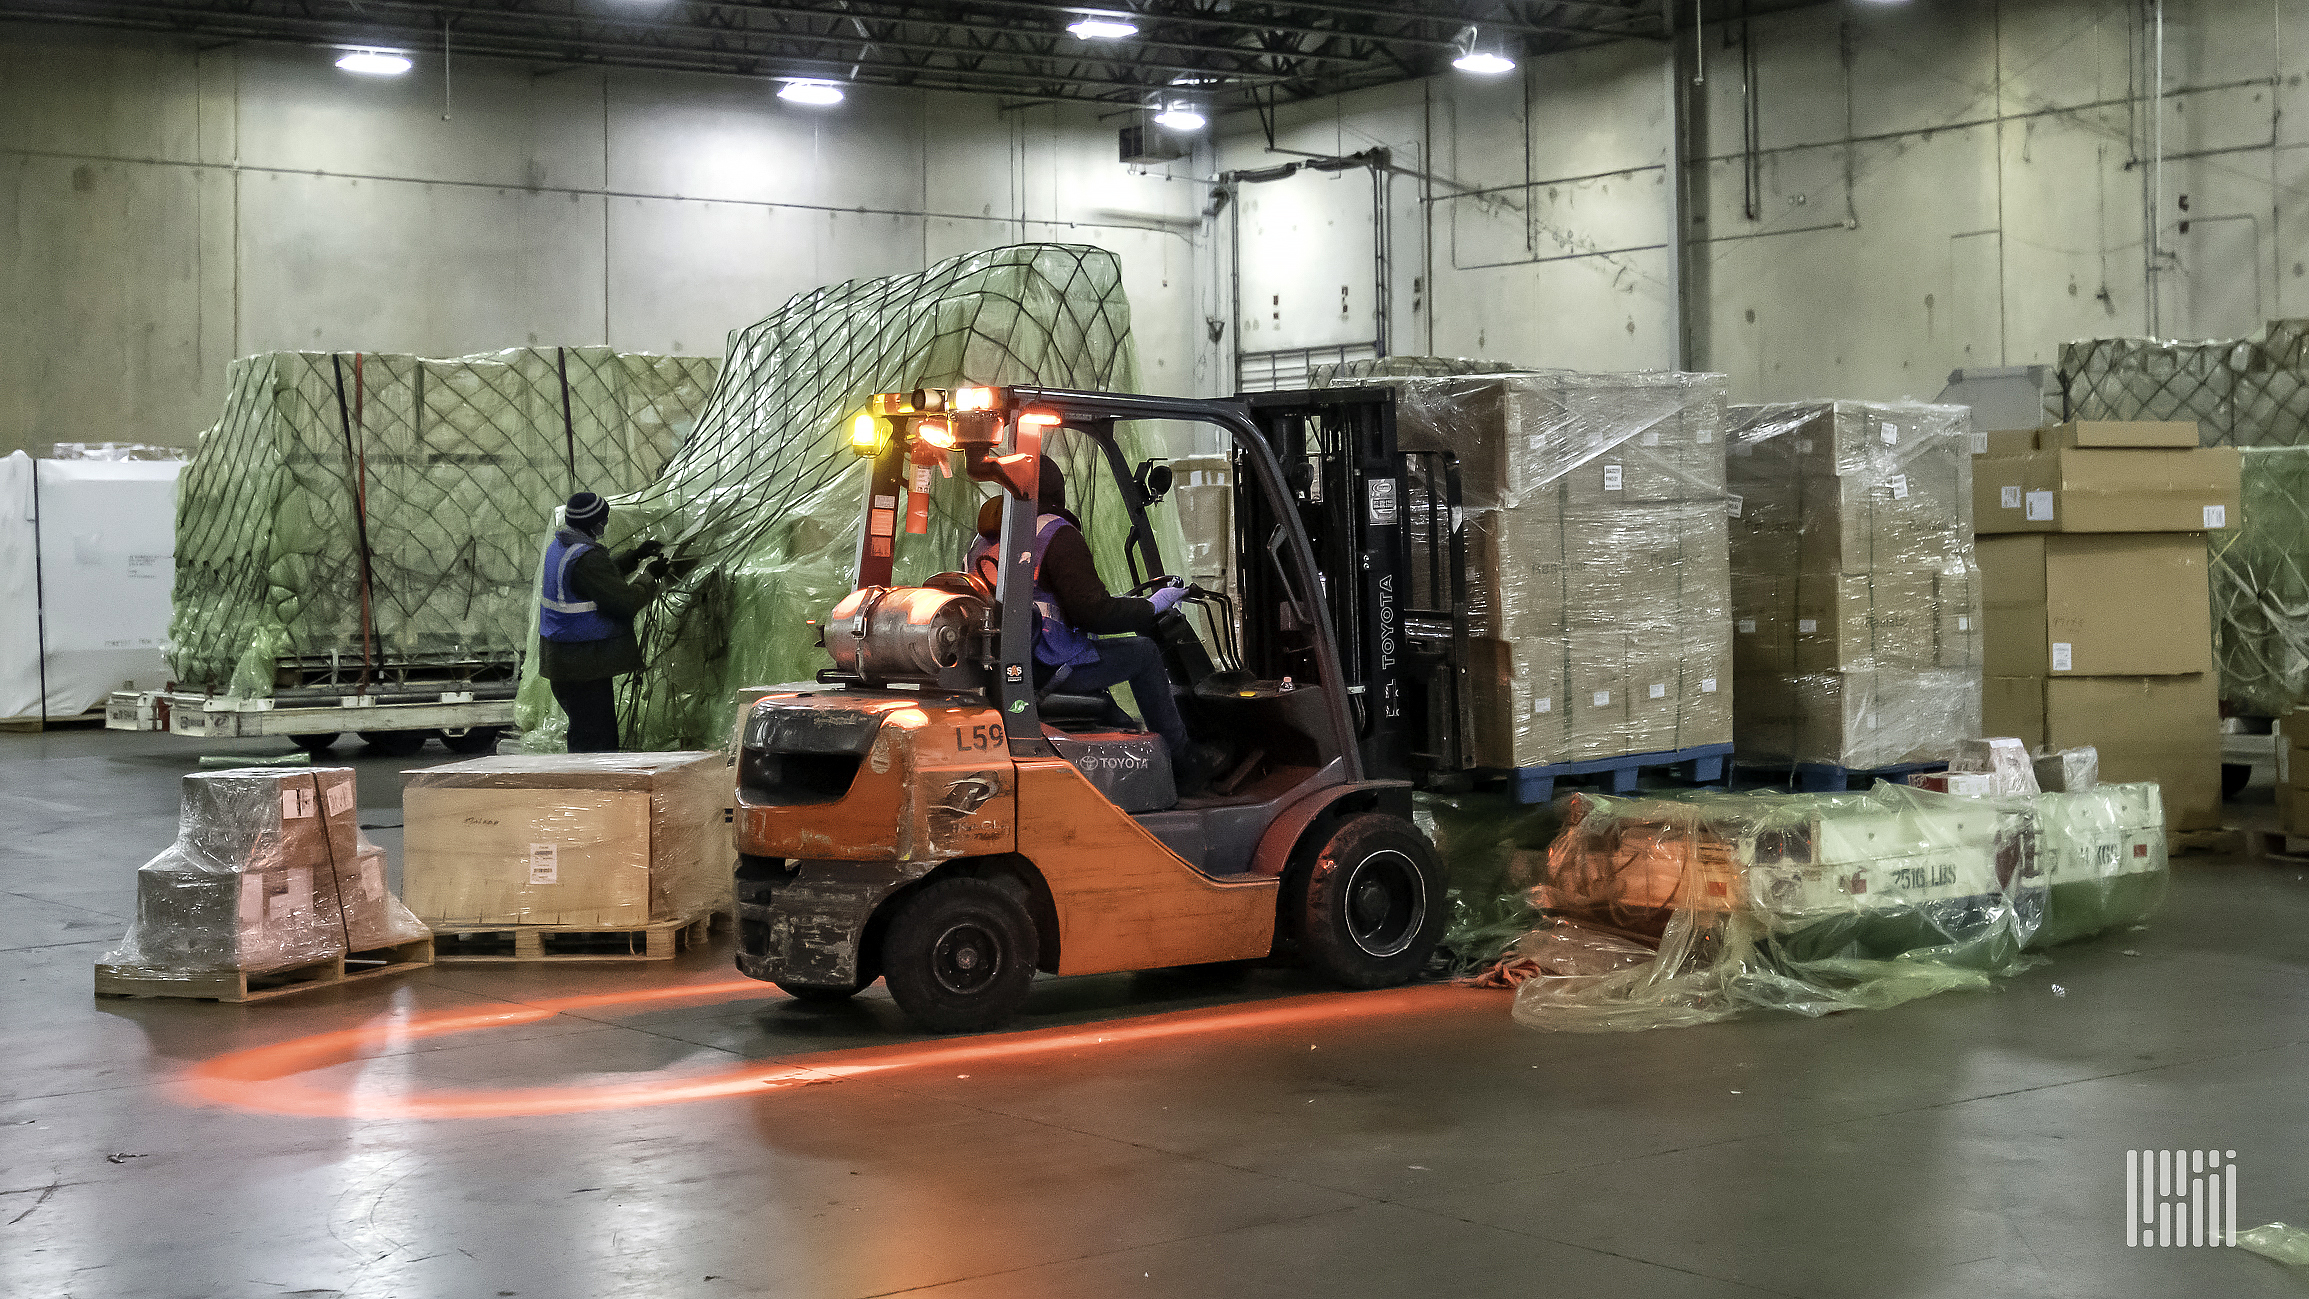 A forklift moving stacks of boxes in a warehouse.